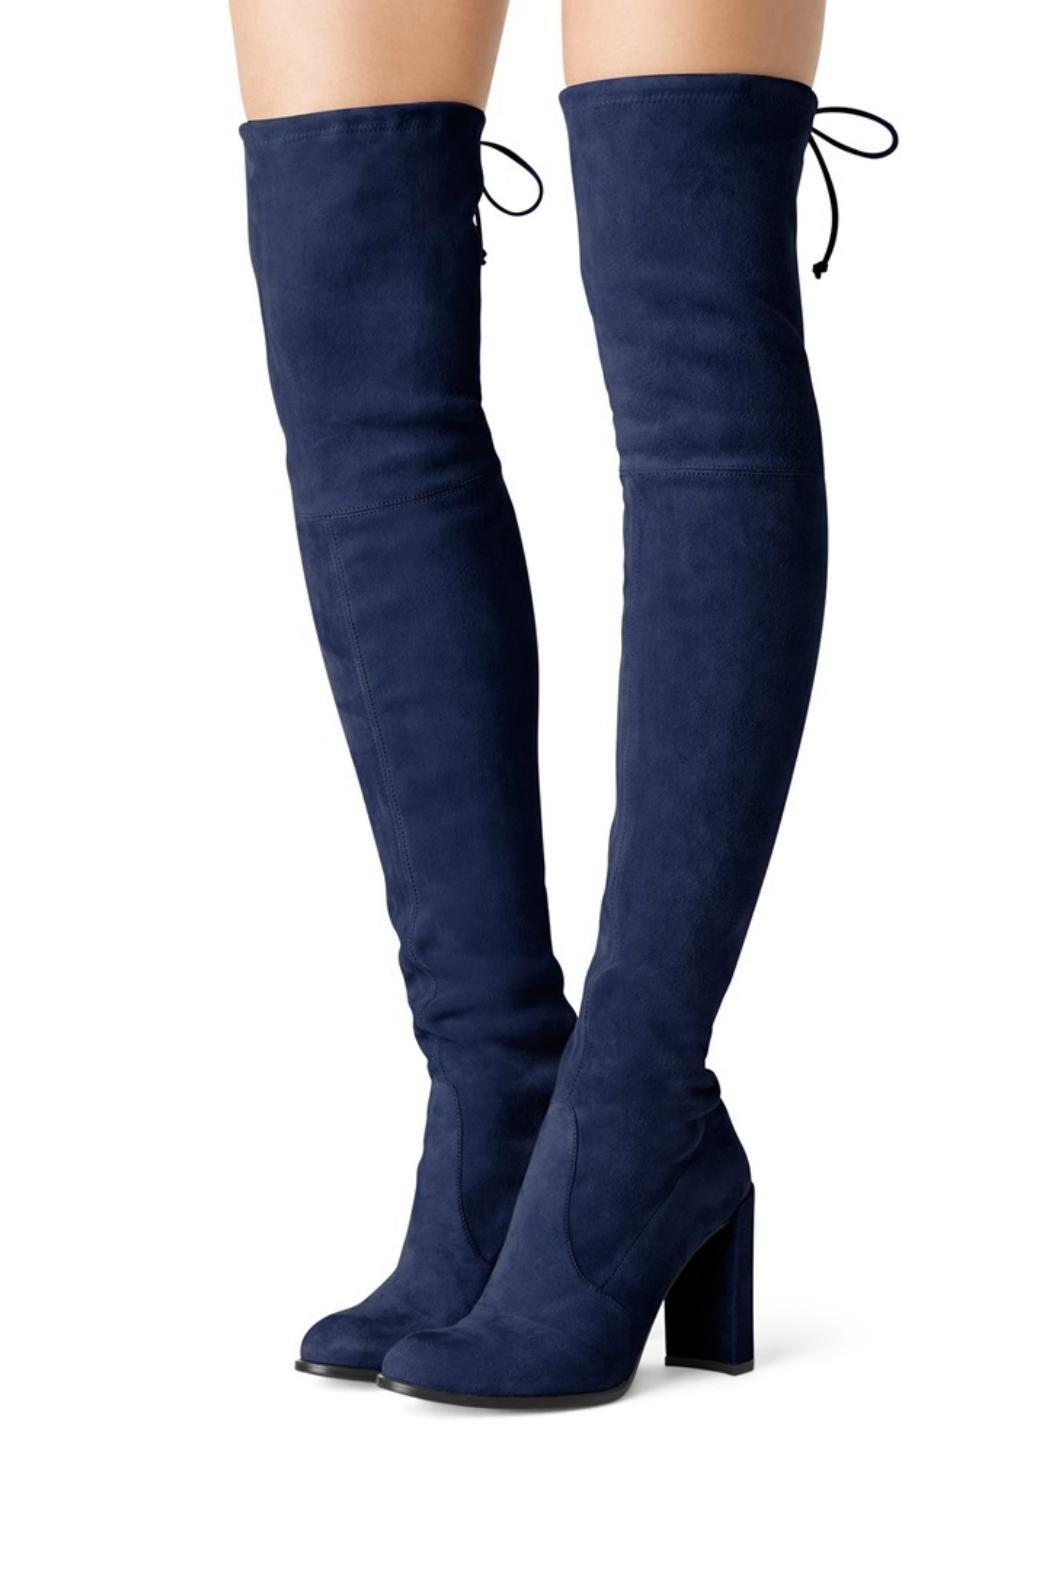 4bc10bf88f0  790 Stuart Weitzman Hiline Over the Knee Boot Suede Boots Thigh High Booties  6